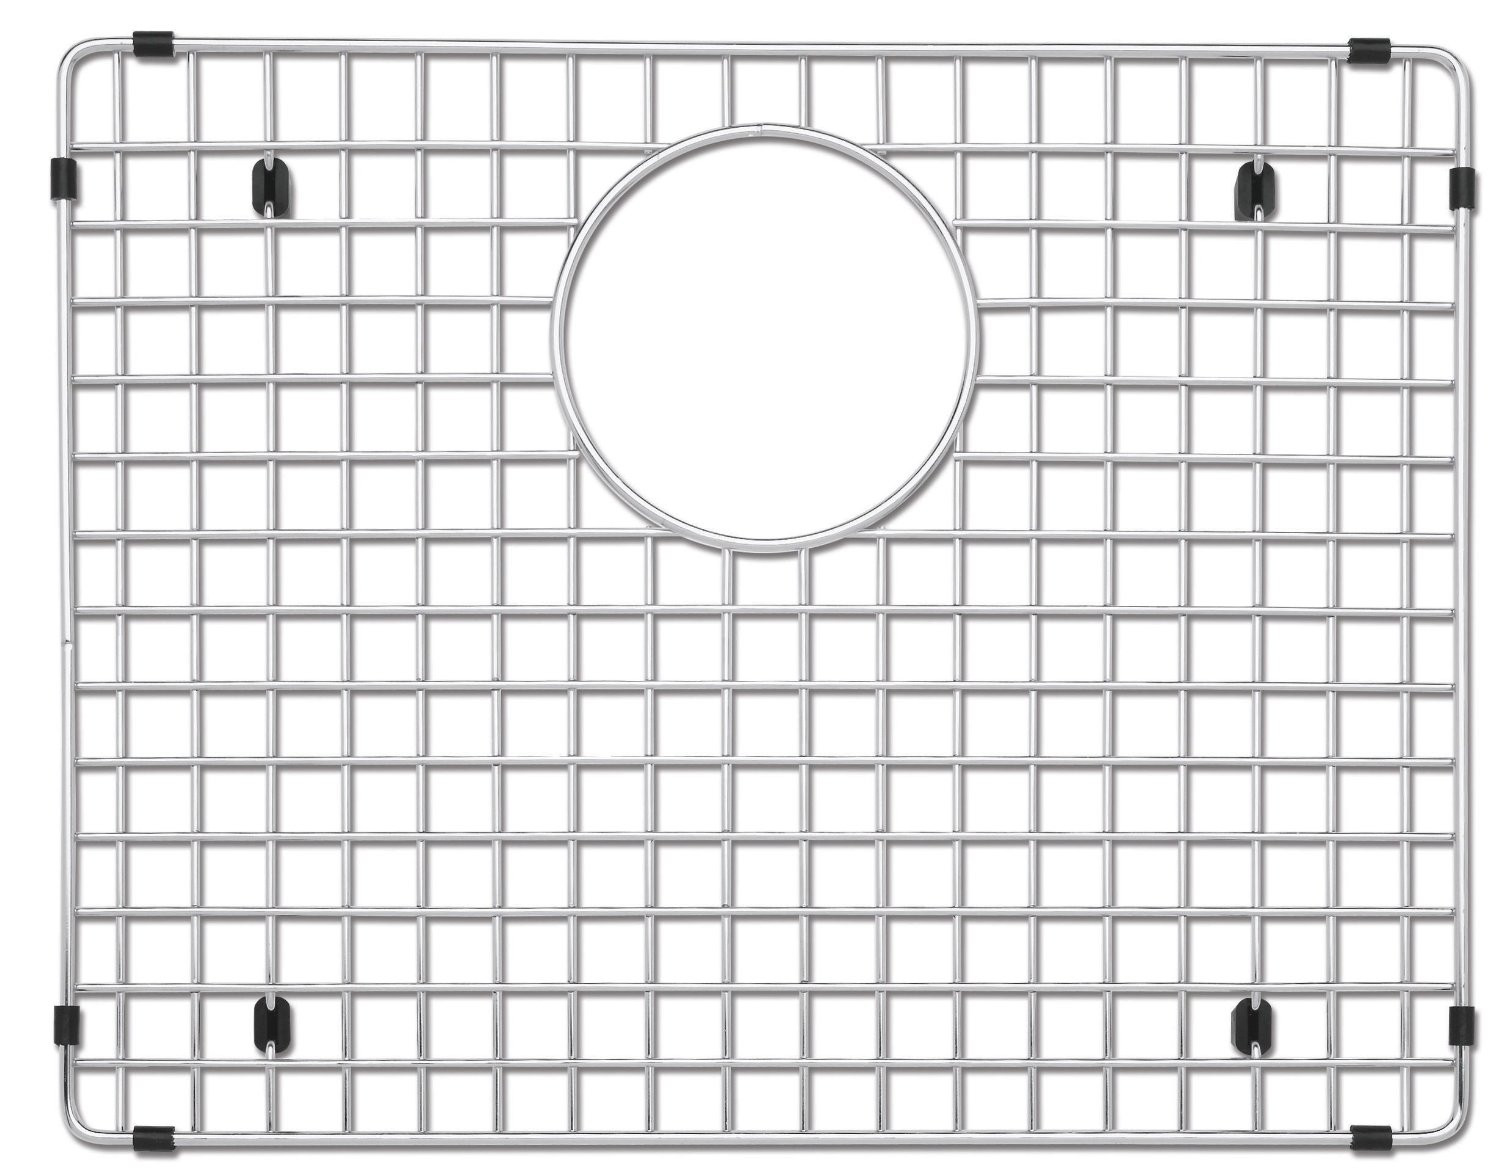 Blanco 516271 Stainless Steel Kitchen Grid Fits Precision 16 Inch Sinks